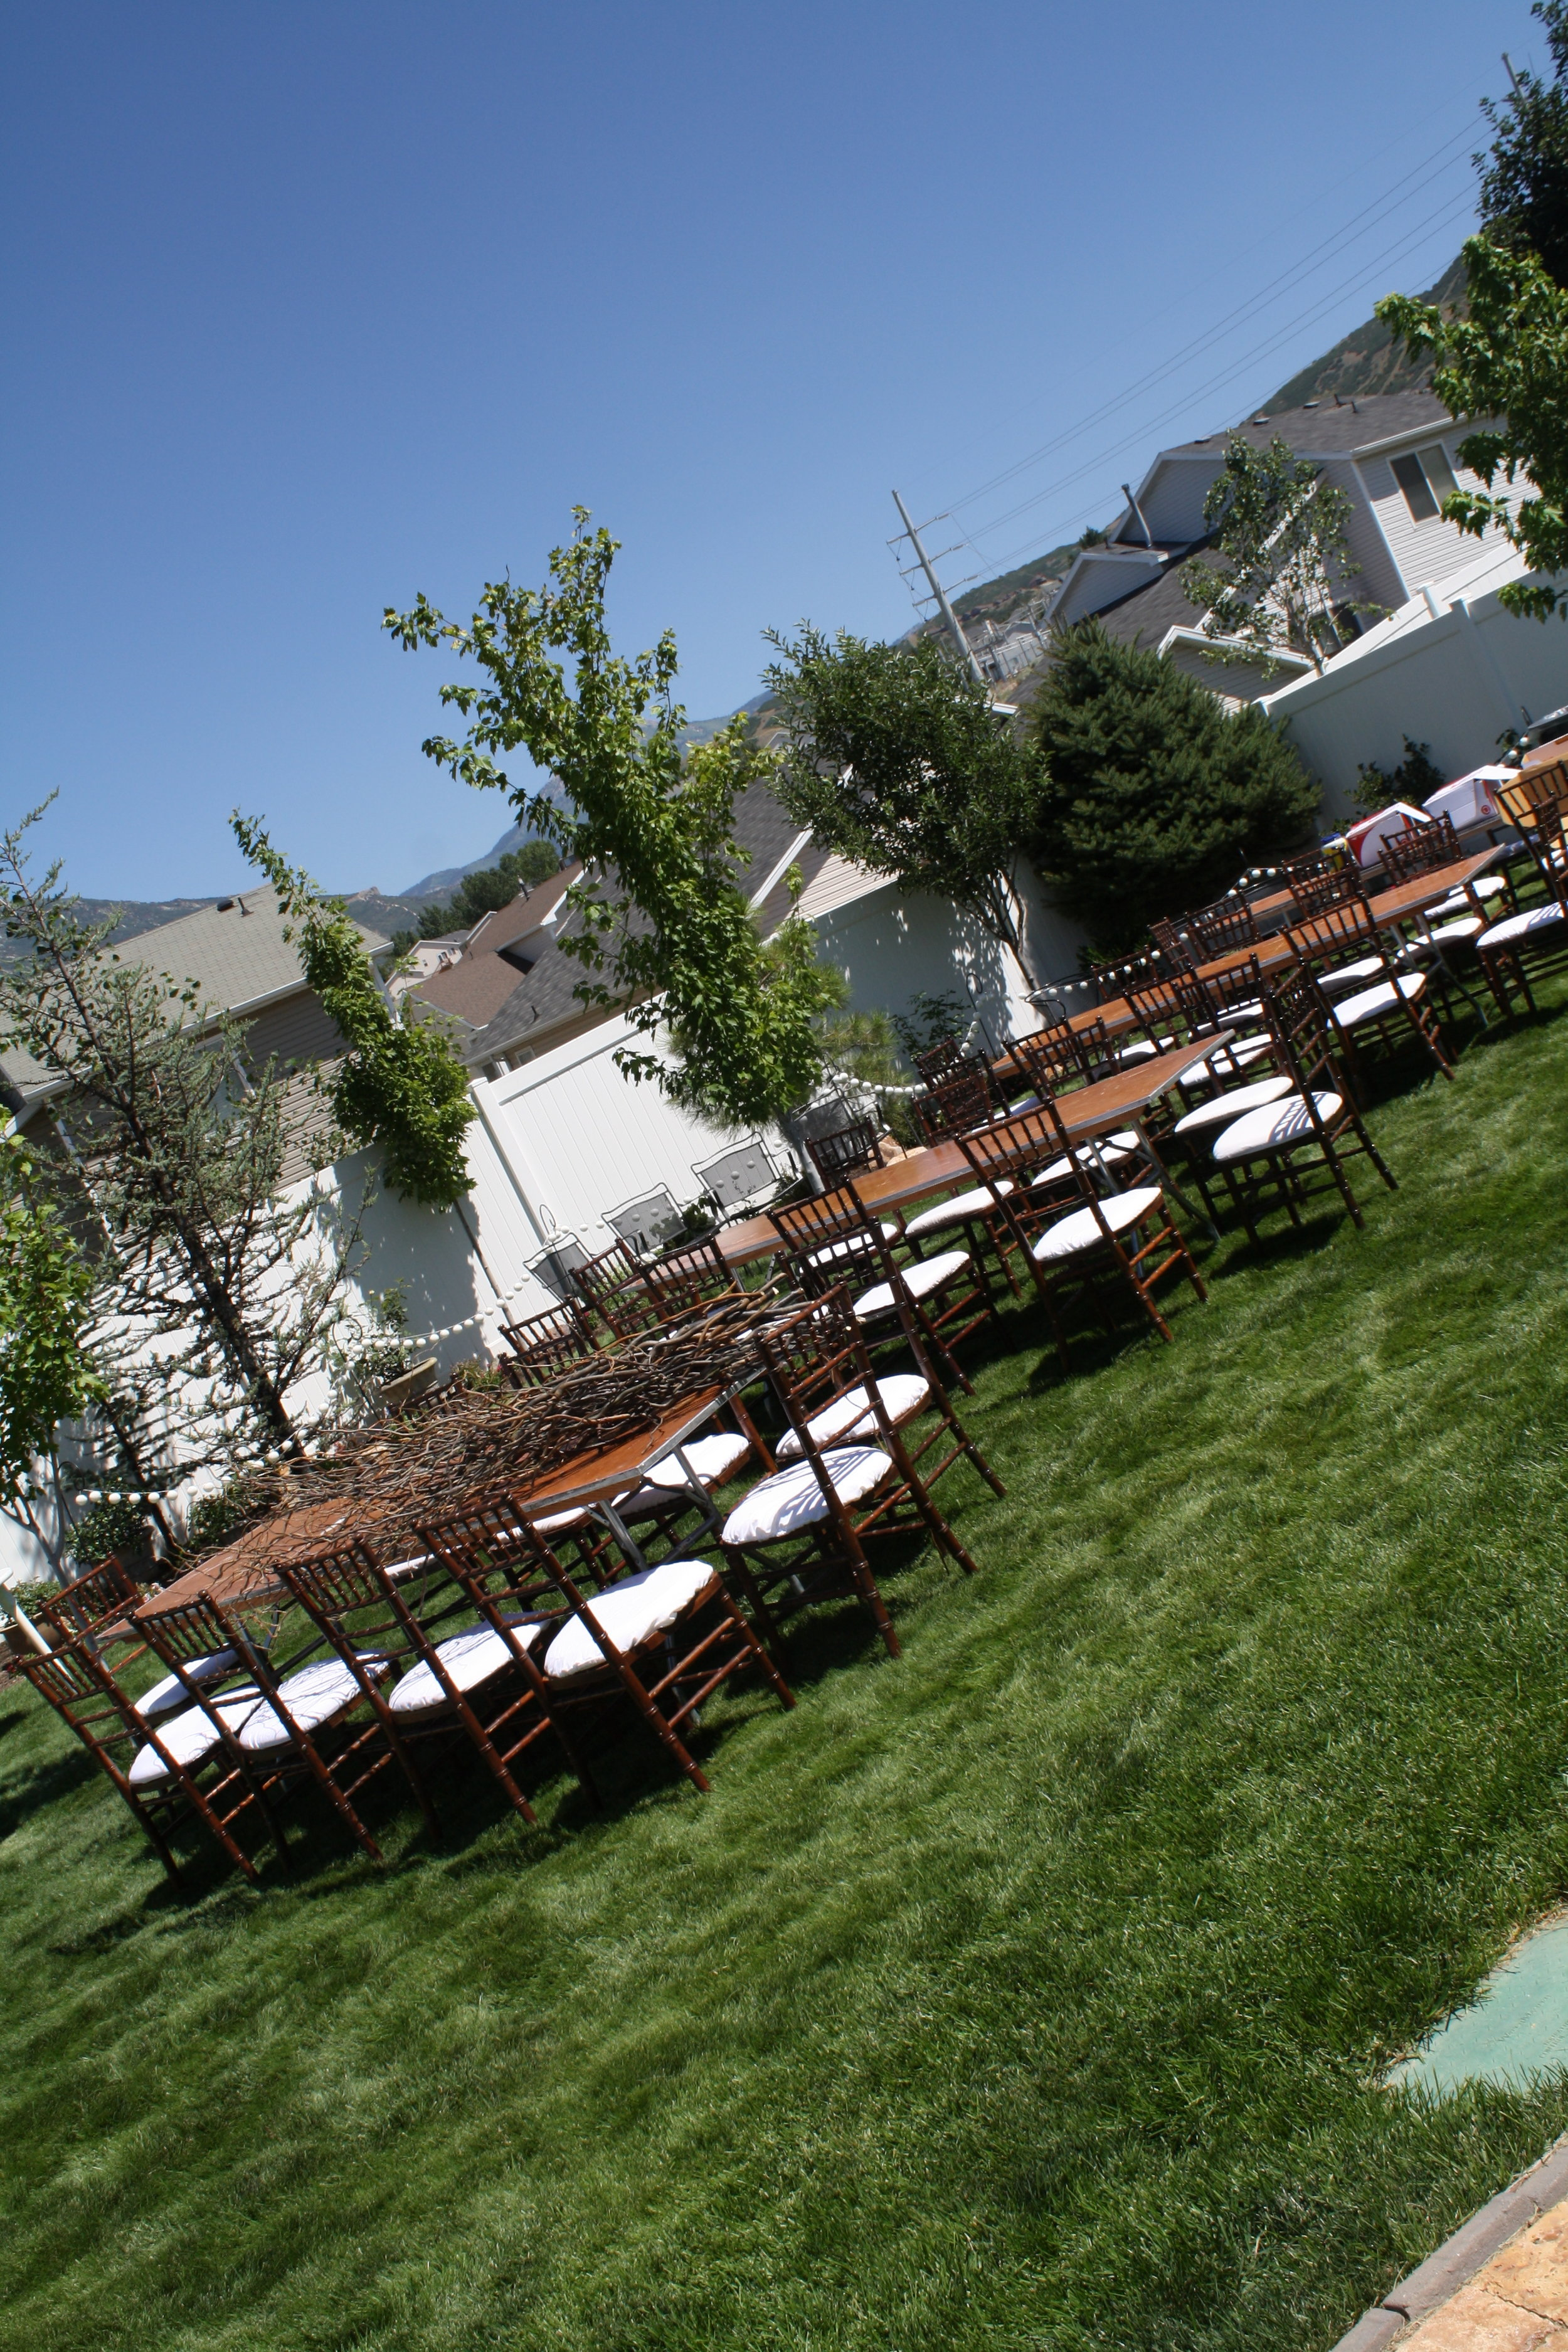 Starting to set up chairs and tables.